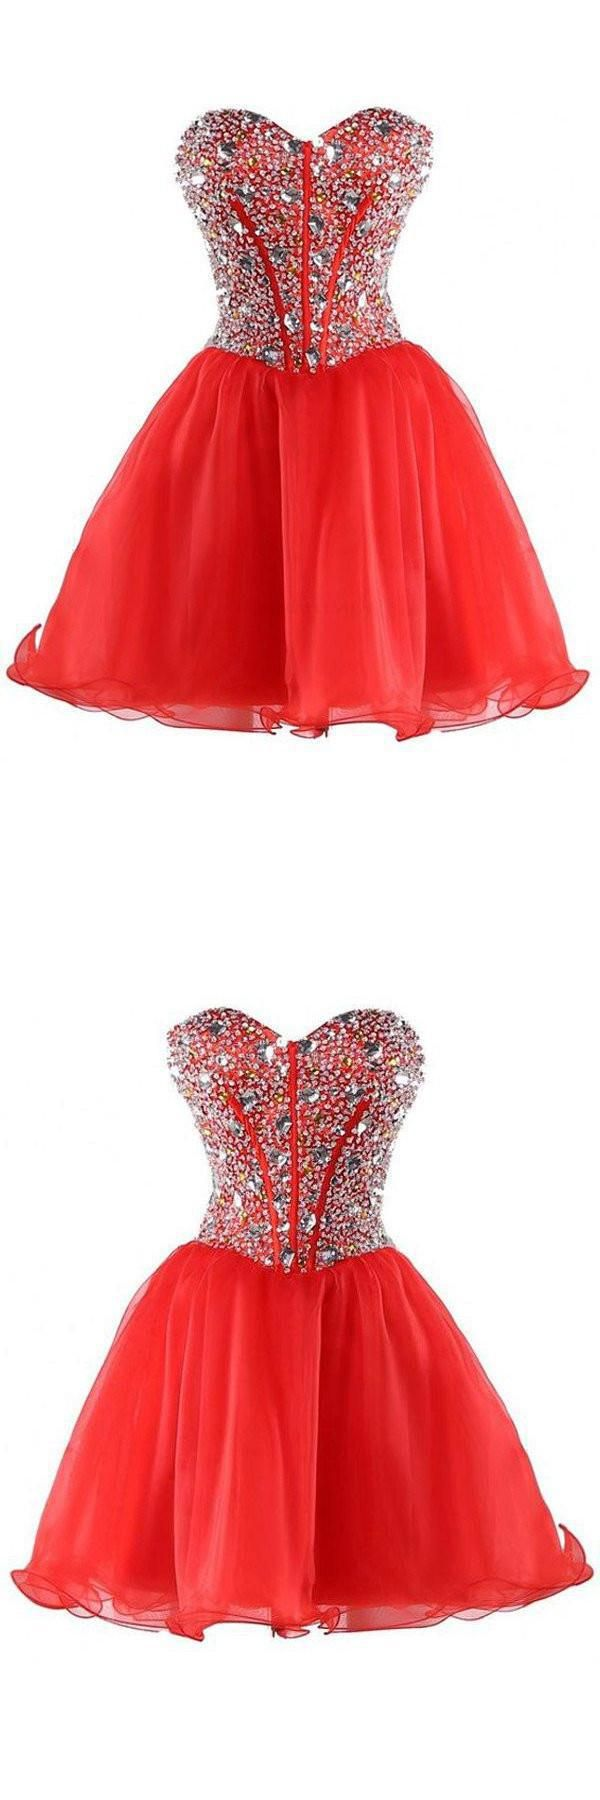 Mermaid sweetheart organza bead homecoming dress cocktail dress in